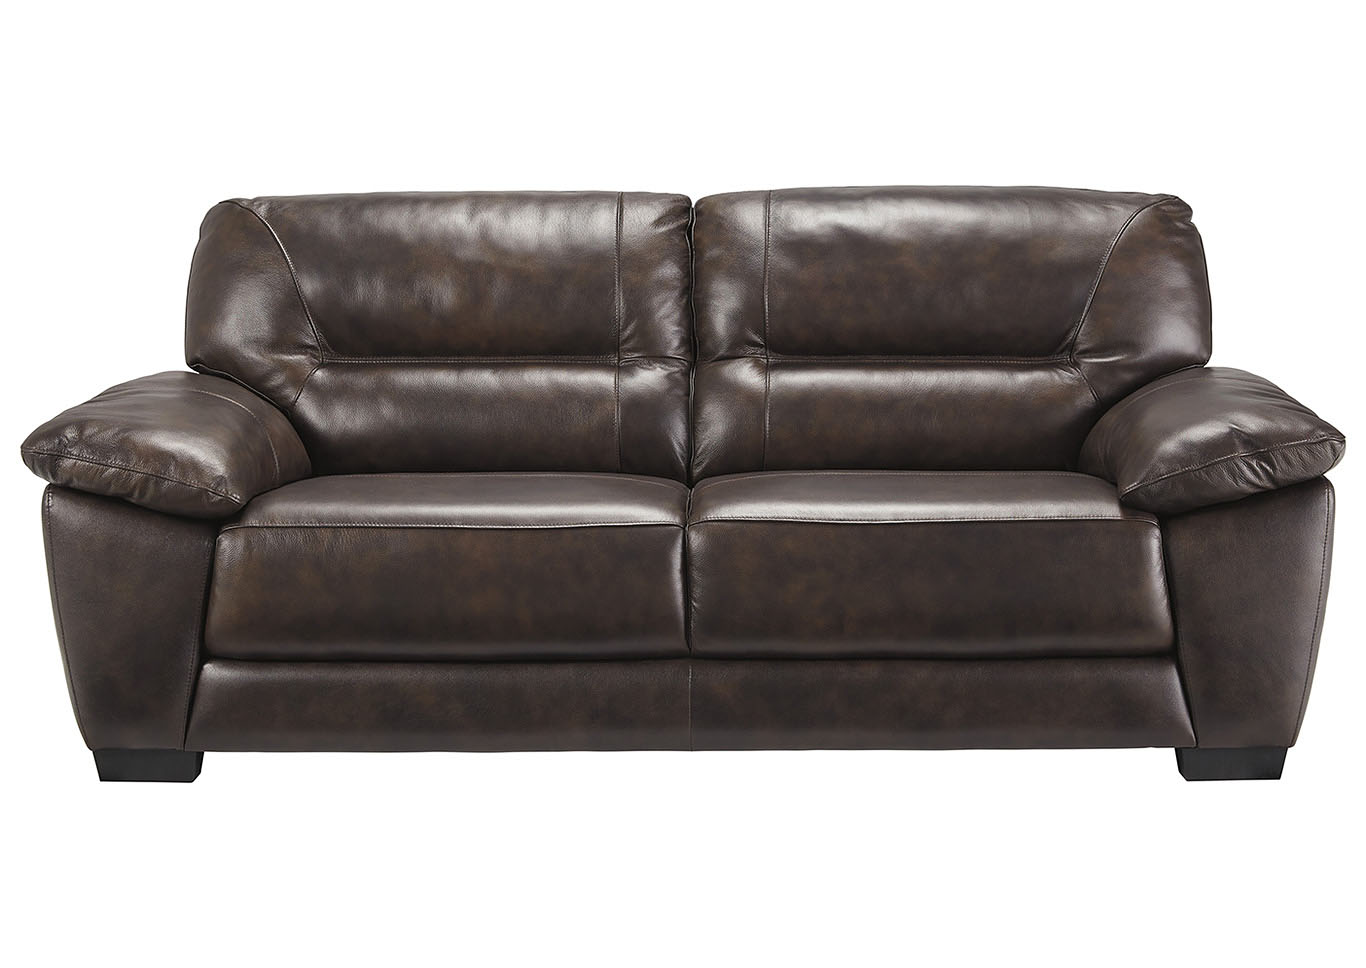 Mellen Walnut Sofa,Signature Design By Ashley